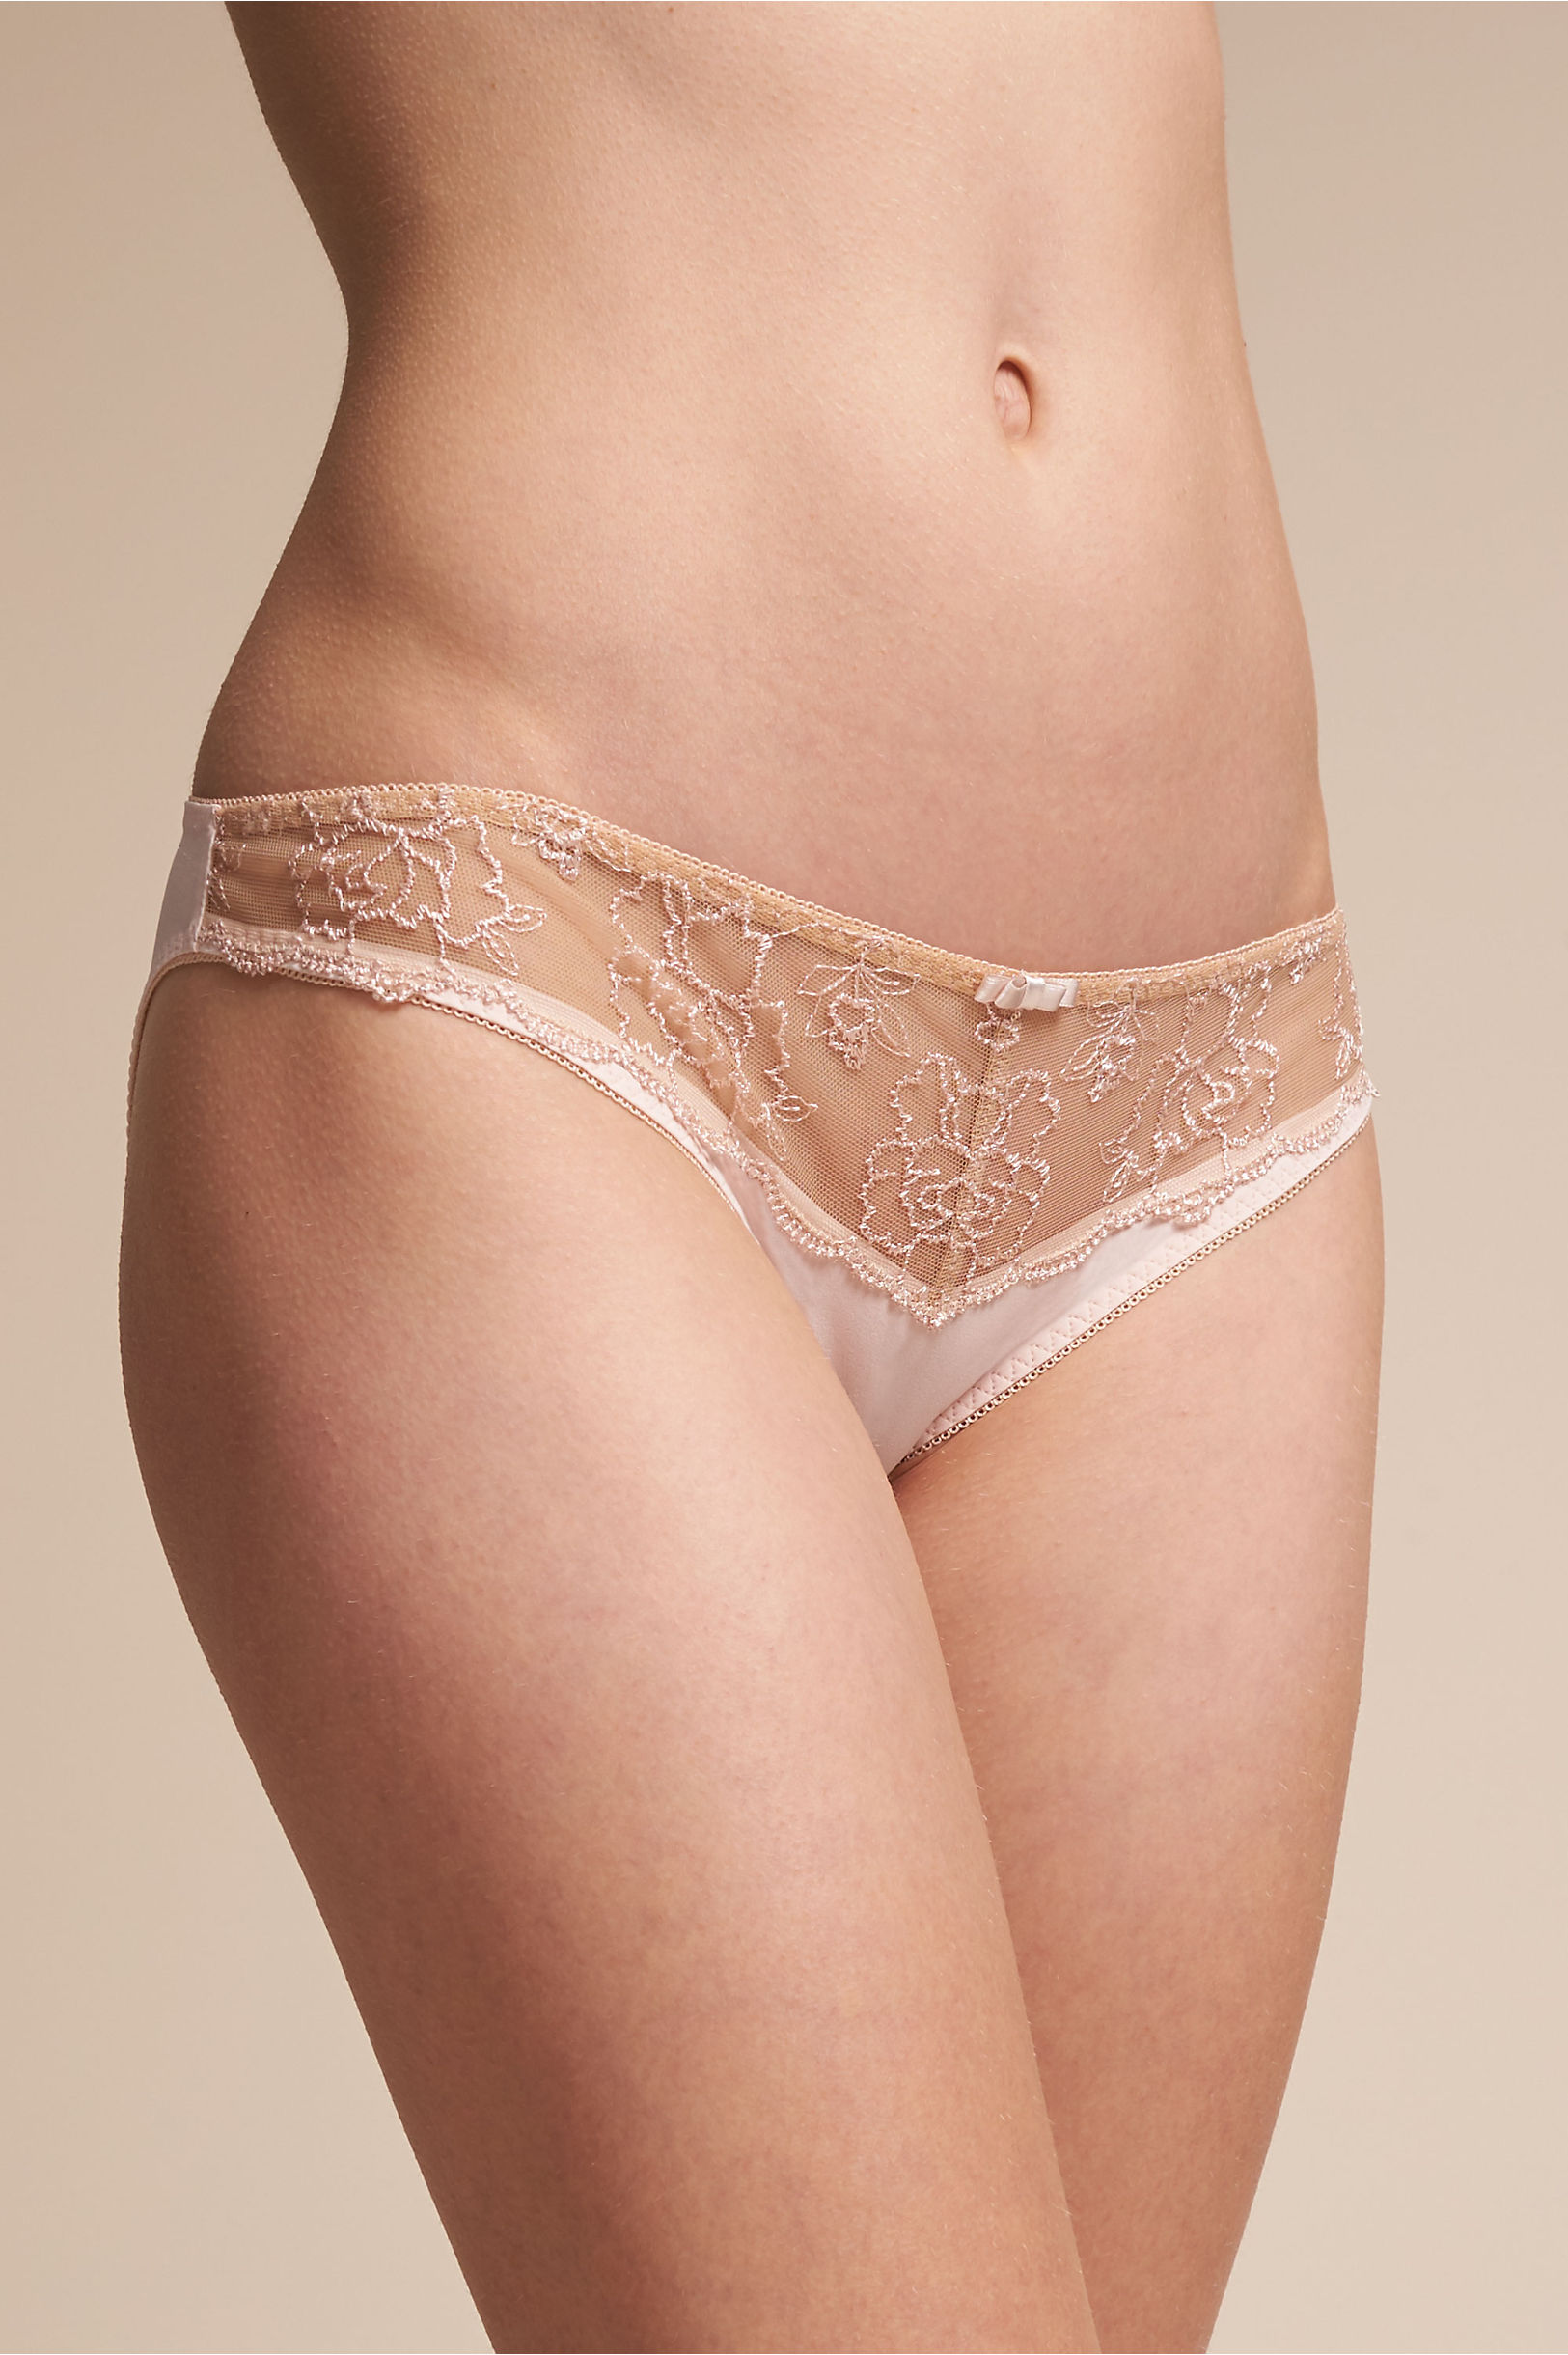 gisette panty blush in sale | bhldn